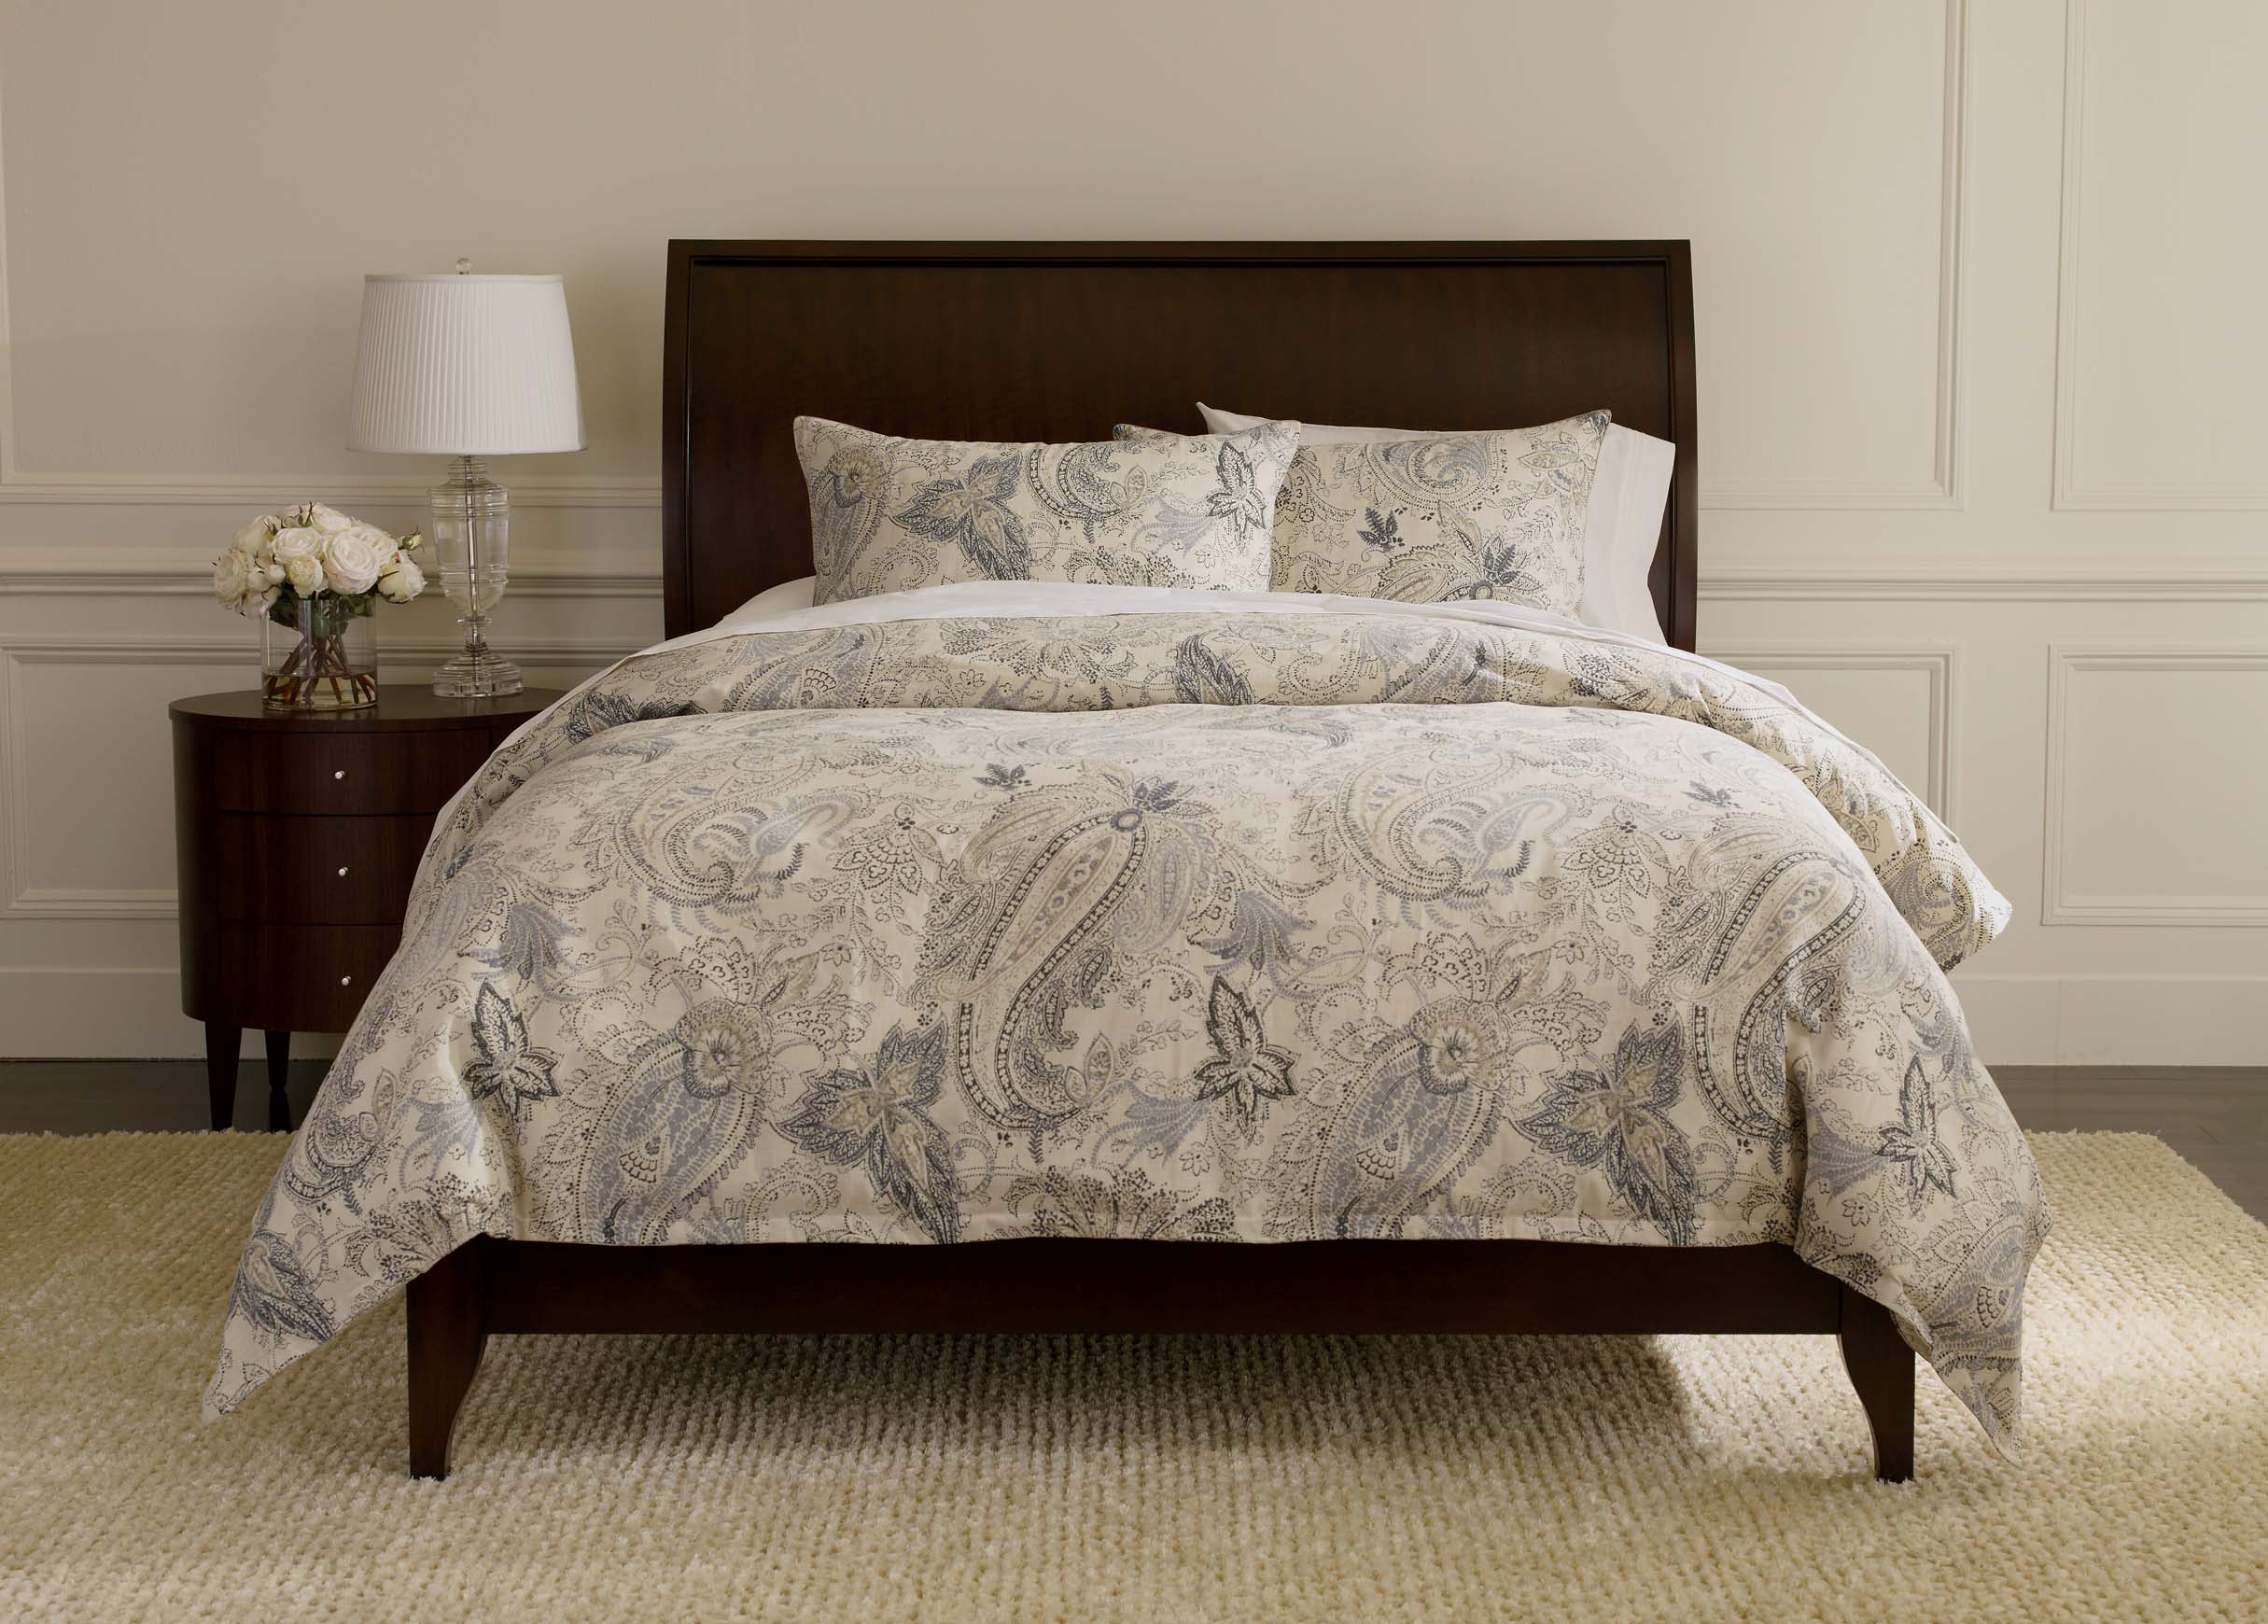 Bed Works shops are among the leading bed stores in the Sydney metro area, providing you with the finest range of bed frames, mattresses, bedroom furniture, pillows, and bedding in Sydney .